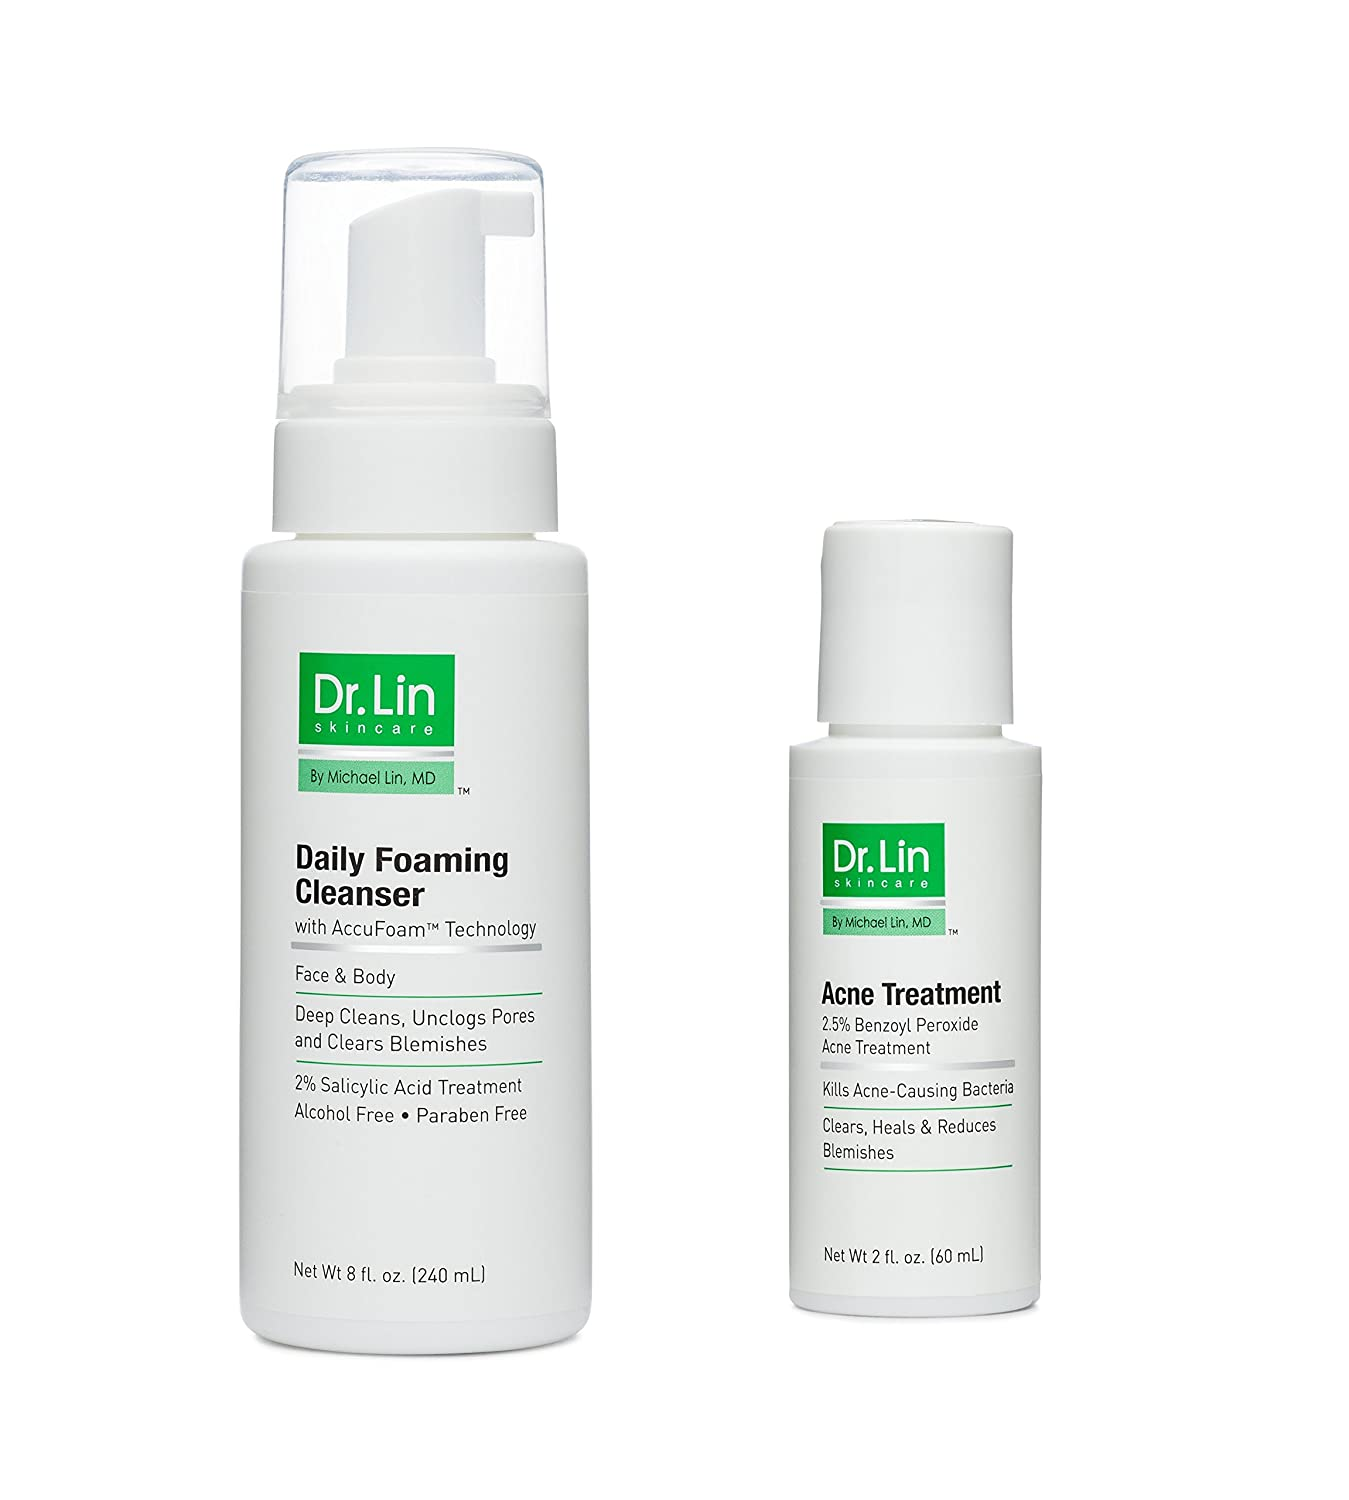 Amazon Com Dr Lin Skincare Body Acne Kit Clears Back Acne Zits Pimples Blemishes Breakouts Includes 8 Oz Daily Foaming Cleanser 2 Oz Acne Treatment Cruelty Free Made By A Dermatologist